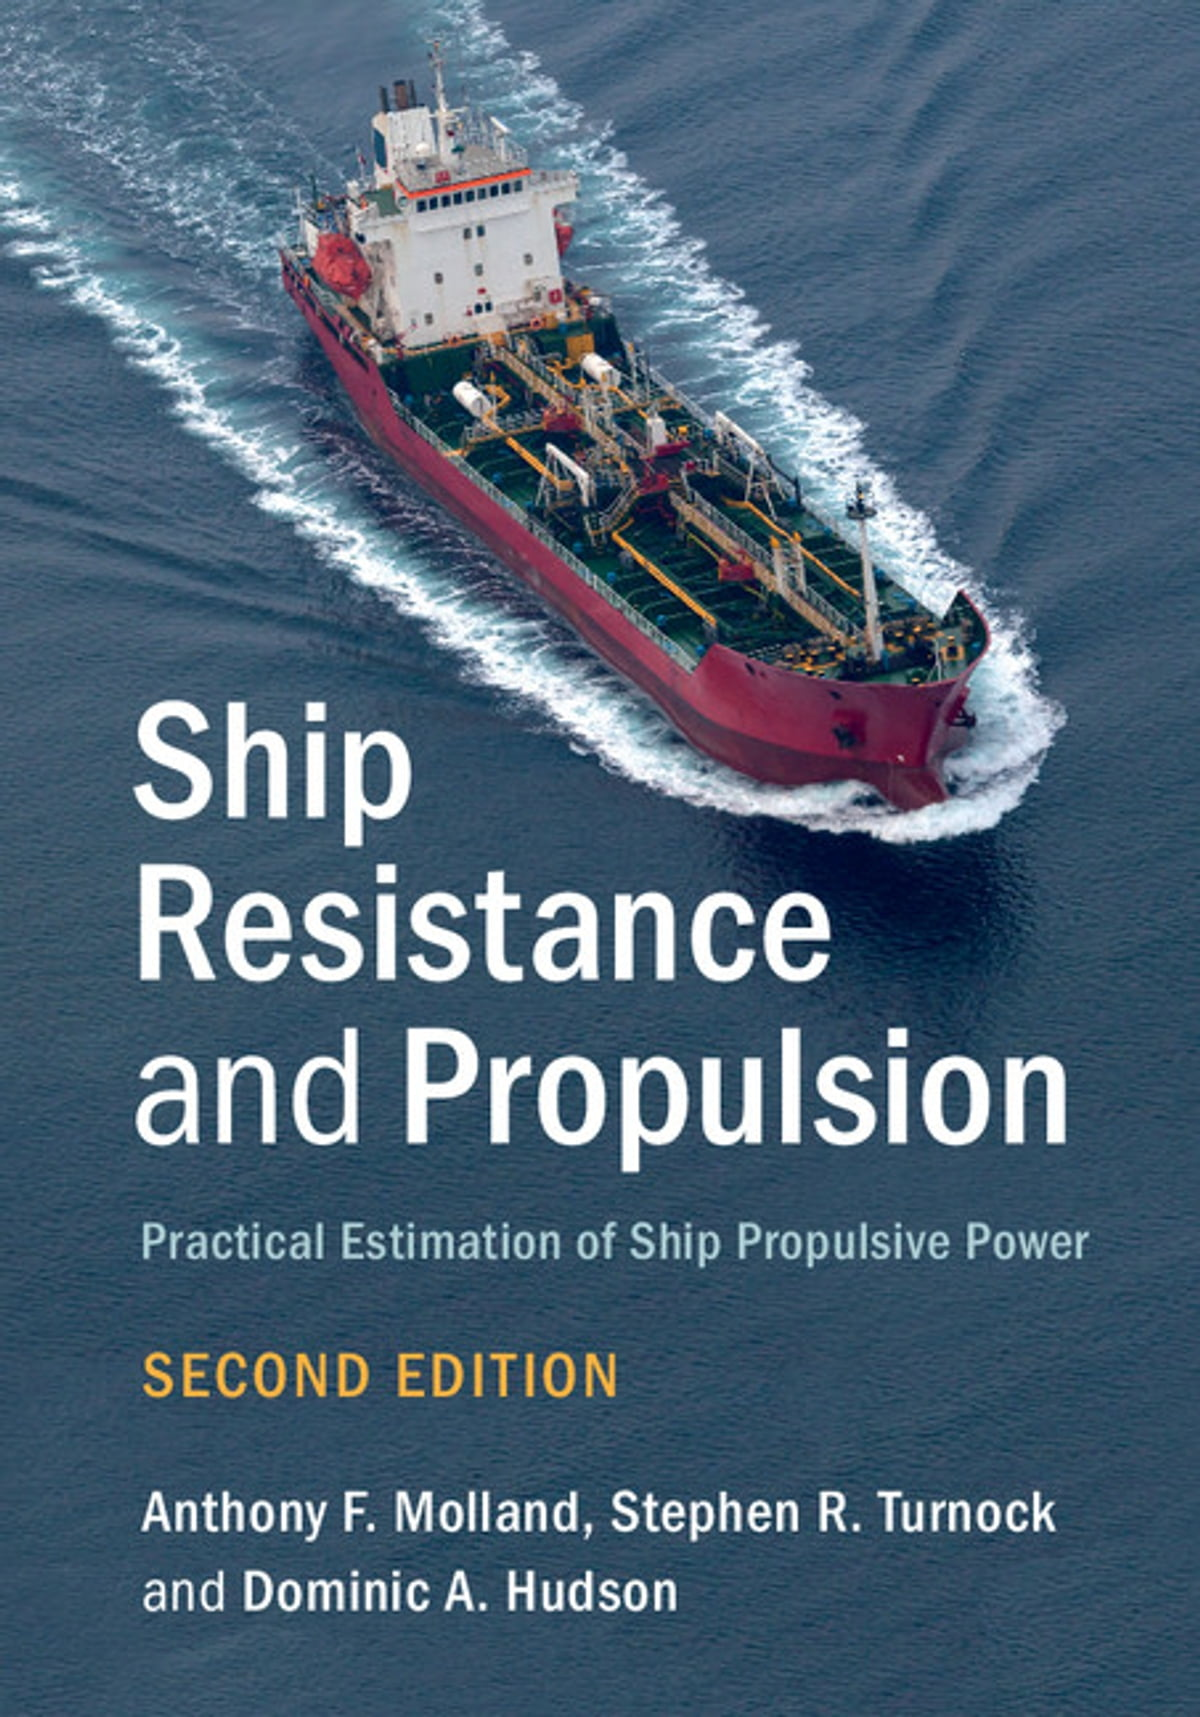 Ship Resistance and Propulsion eBook by Anthony F. Molland - 9781108339858  | Rakuten Kobo